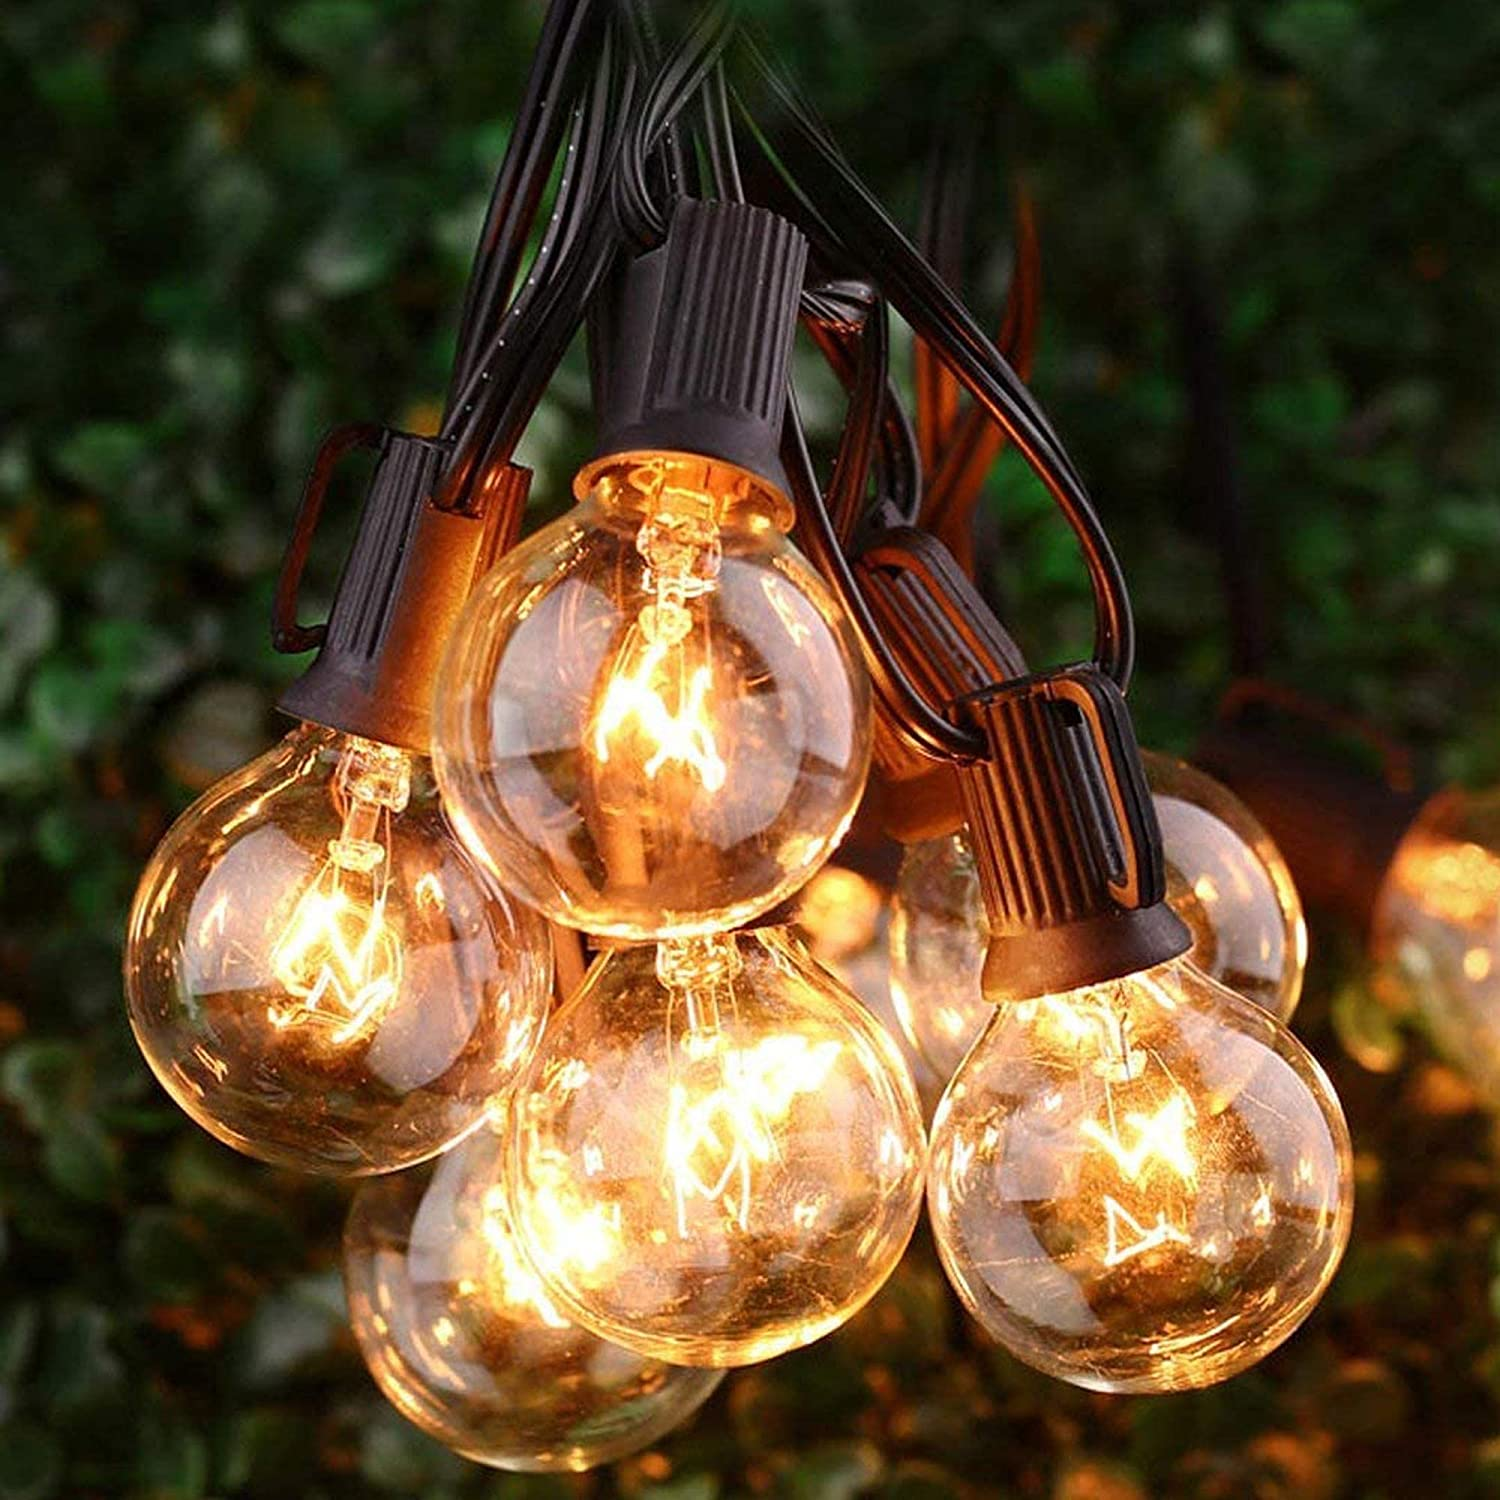 String Lights, Silikang 25Ft G40 GlobeWaterproof String Light with Bulbs-UL Listd for Indoor/Outdoor Commercial Decor Use WeatherproofLight Tents Market CafePorch BackyardBistroParty